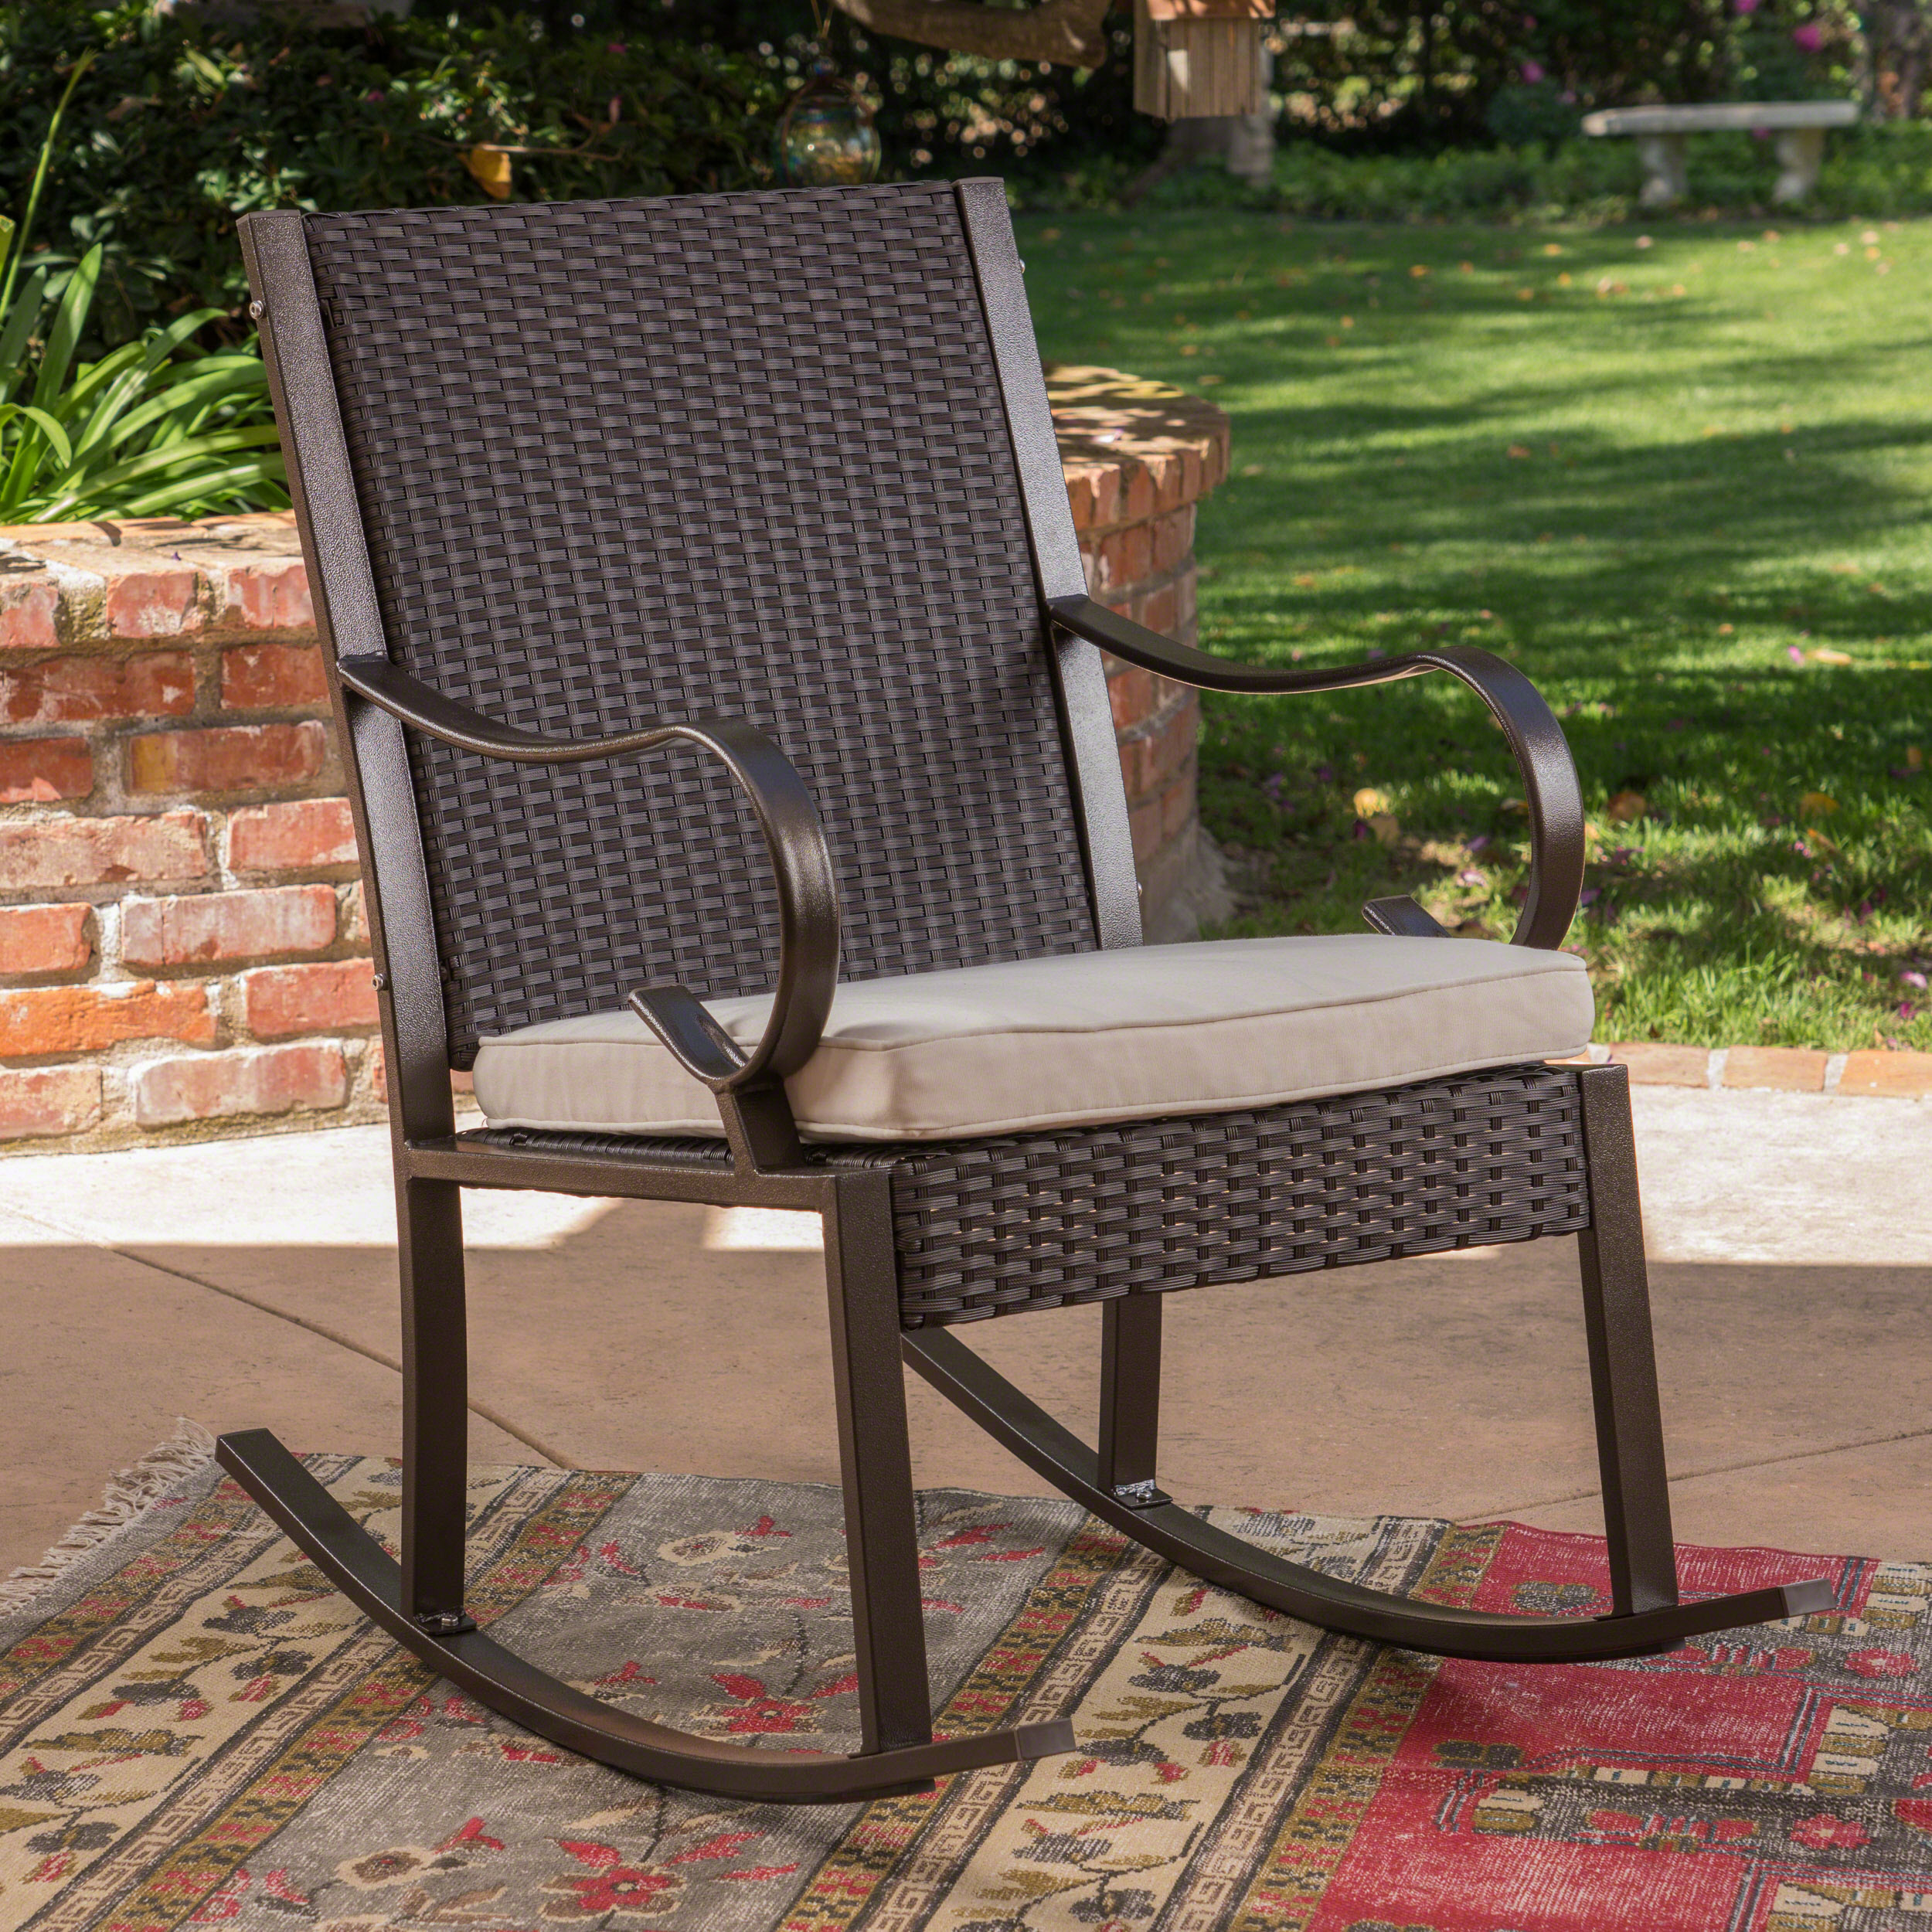 Hacienda Outdoor Wicker Rocking Chair With Cushion, Dark Brown And Cream Regarding Rocking Chairs, Cream And Brown (View 7 of 20)